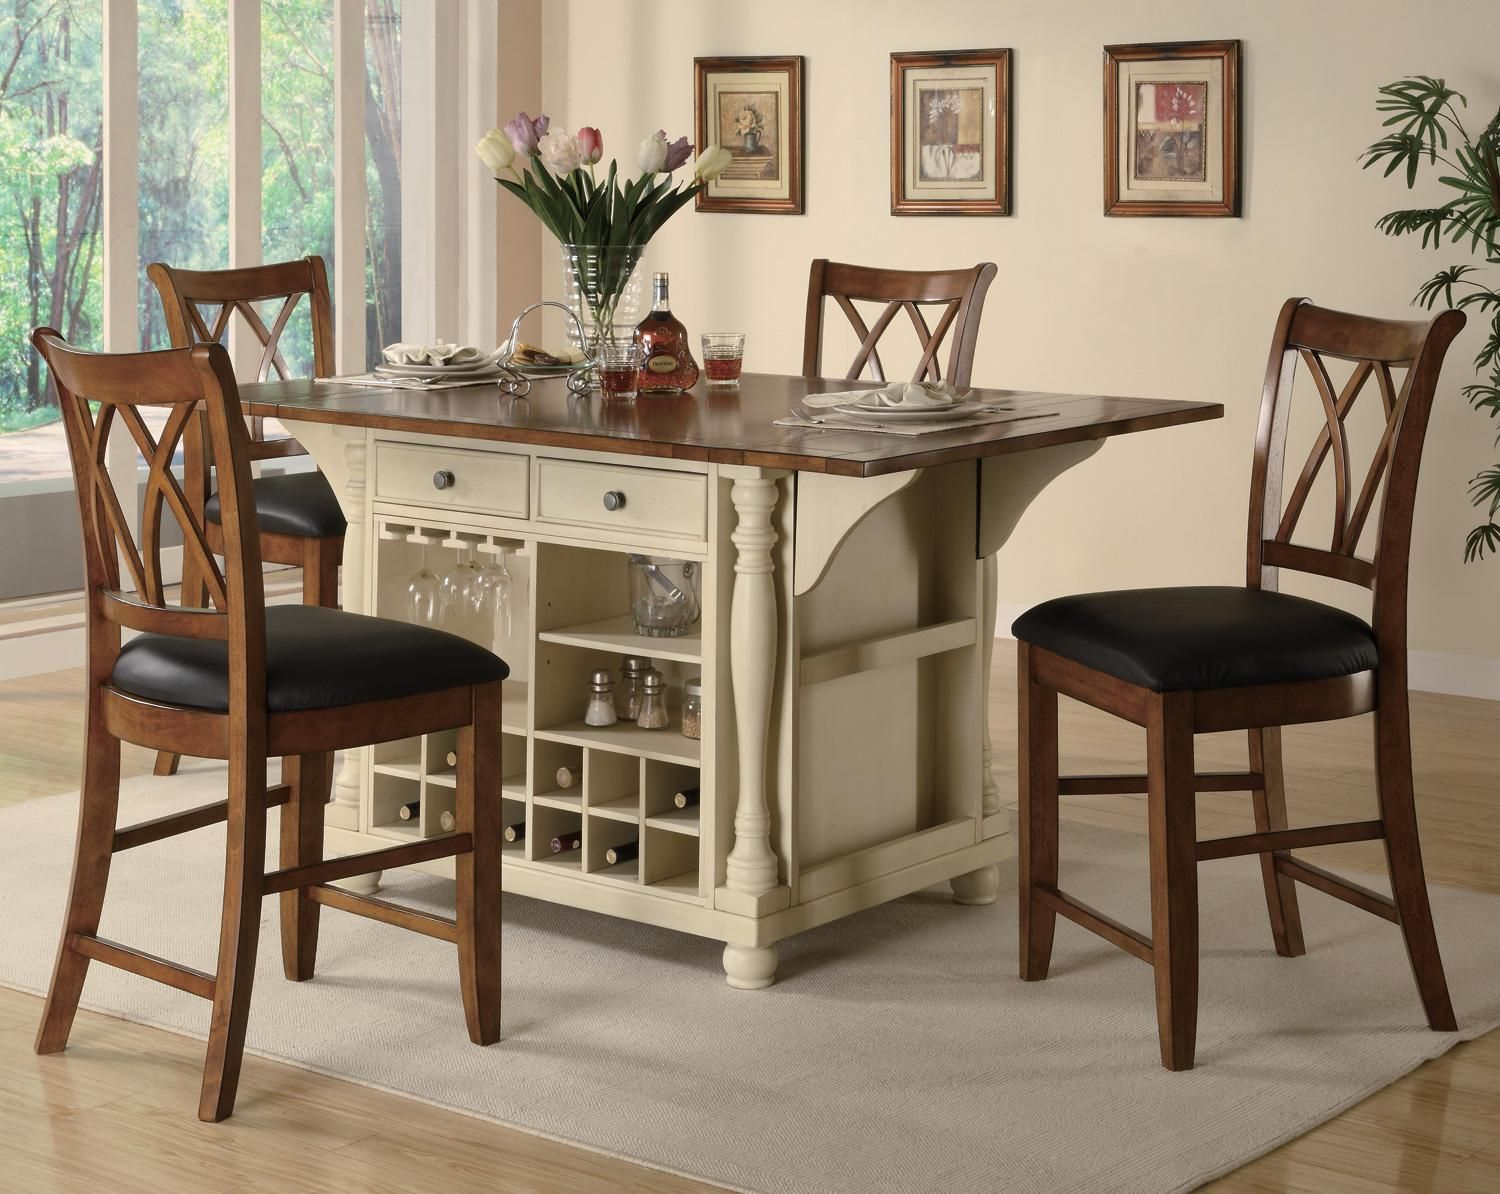 Kitchen Island Chairs White Tall Table And Dinette Sets